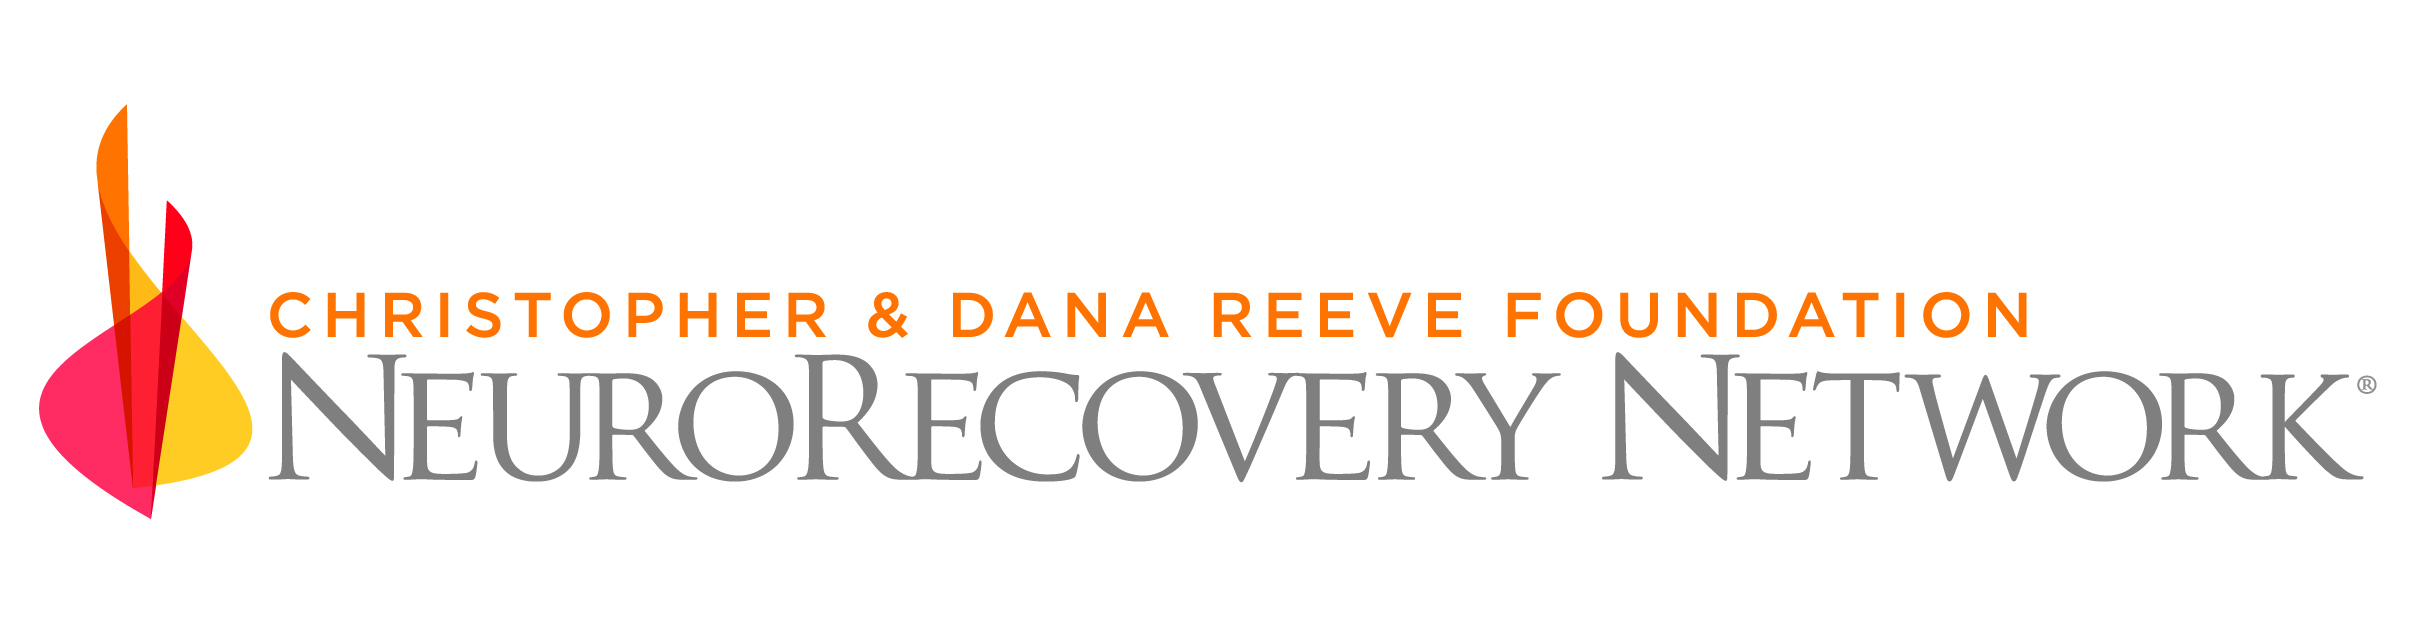 The Christopher and Dana Reeve Foundation NeuroRecovery Network